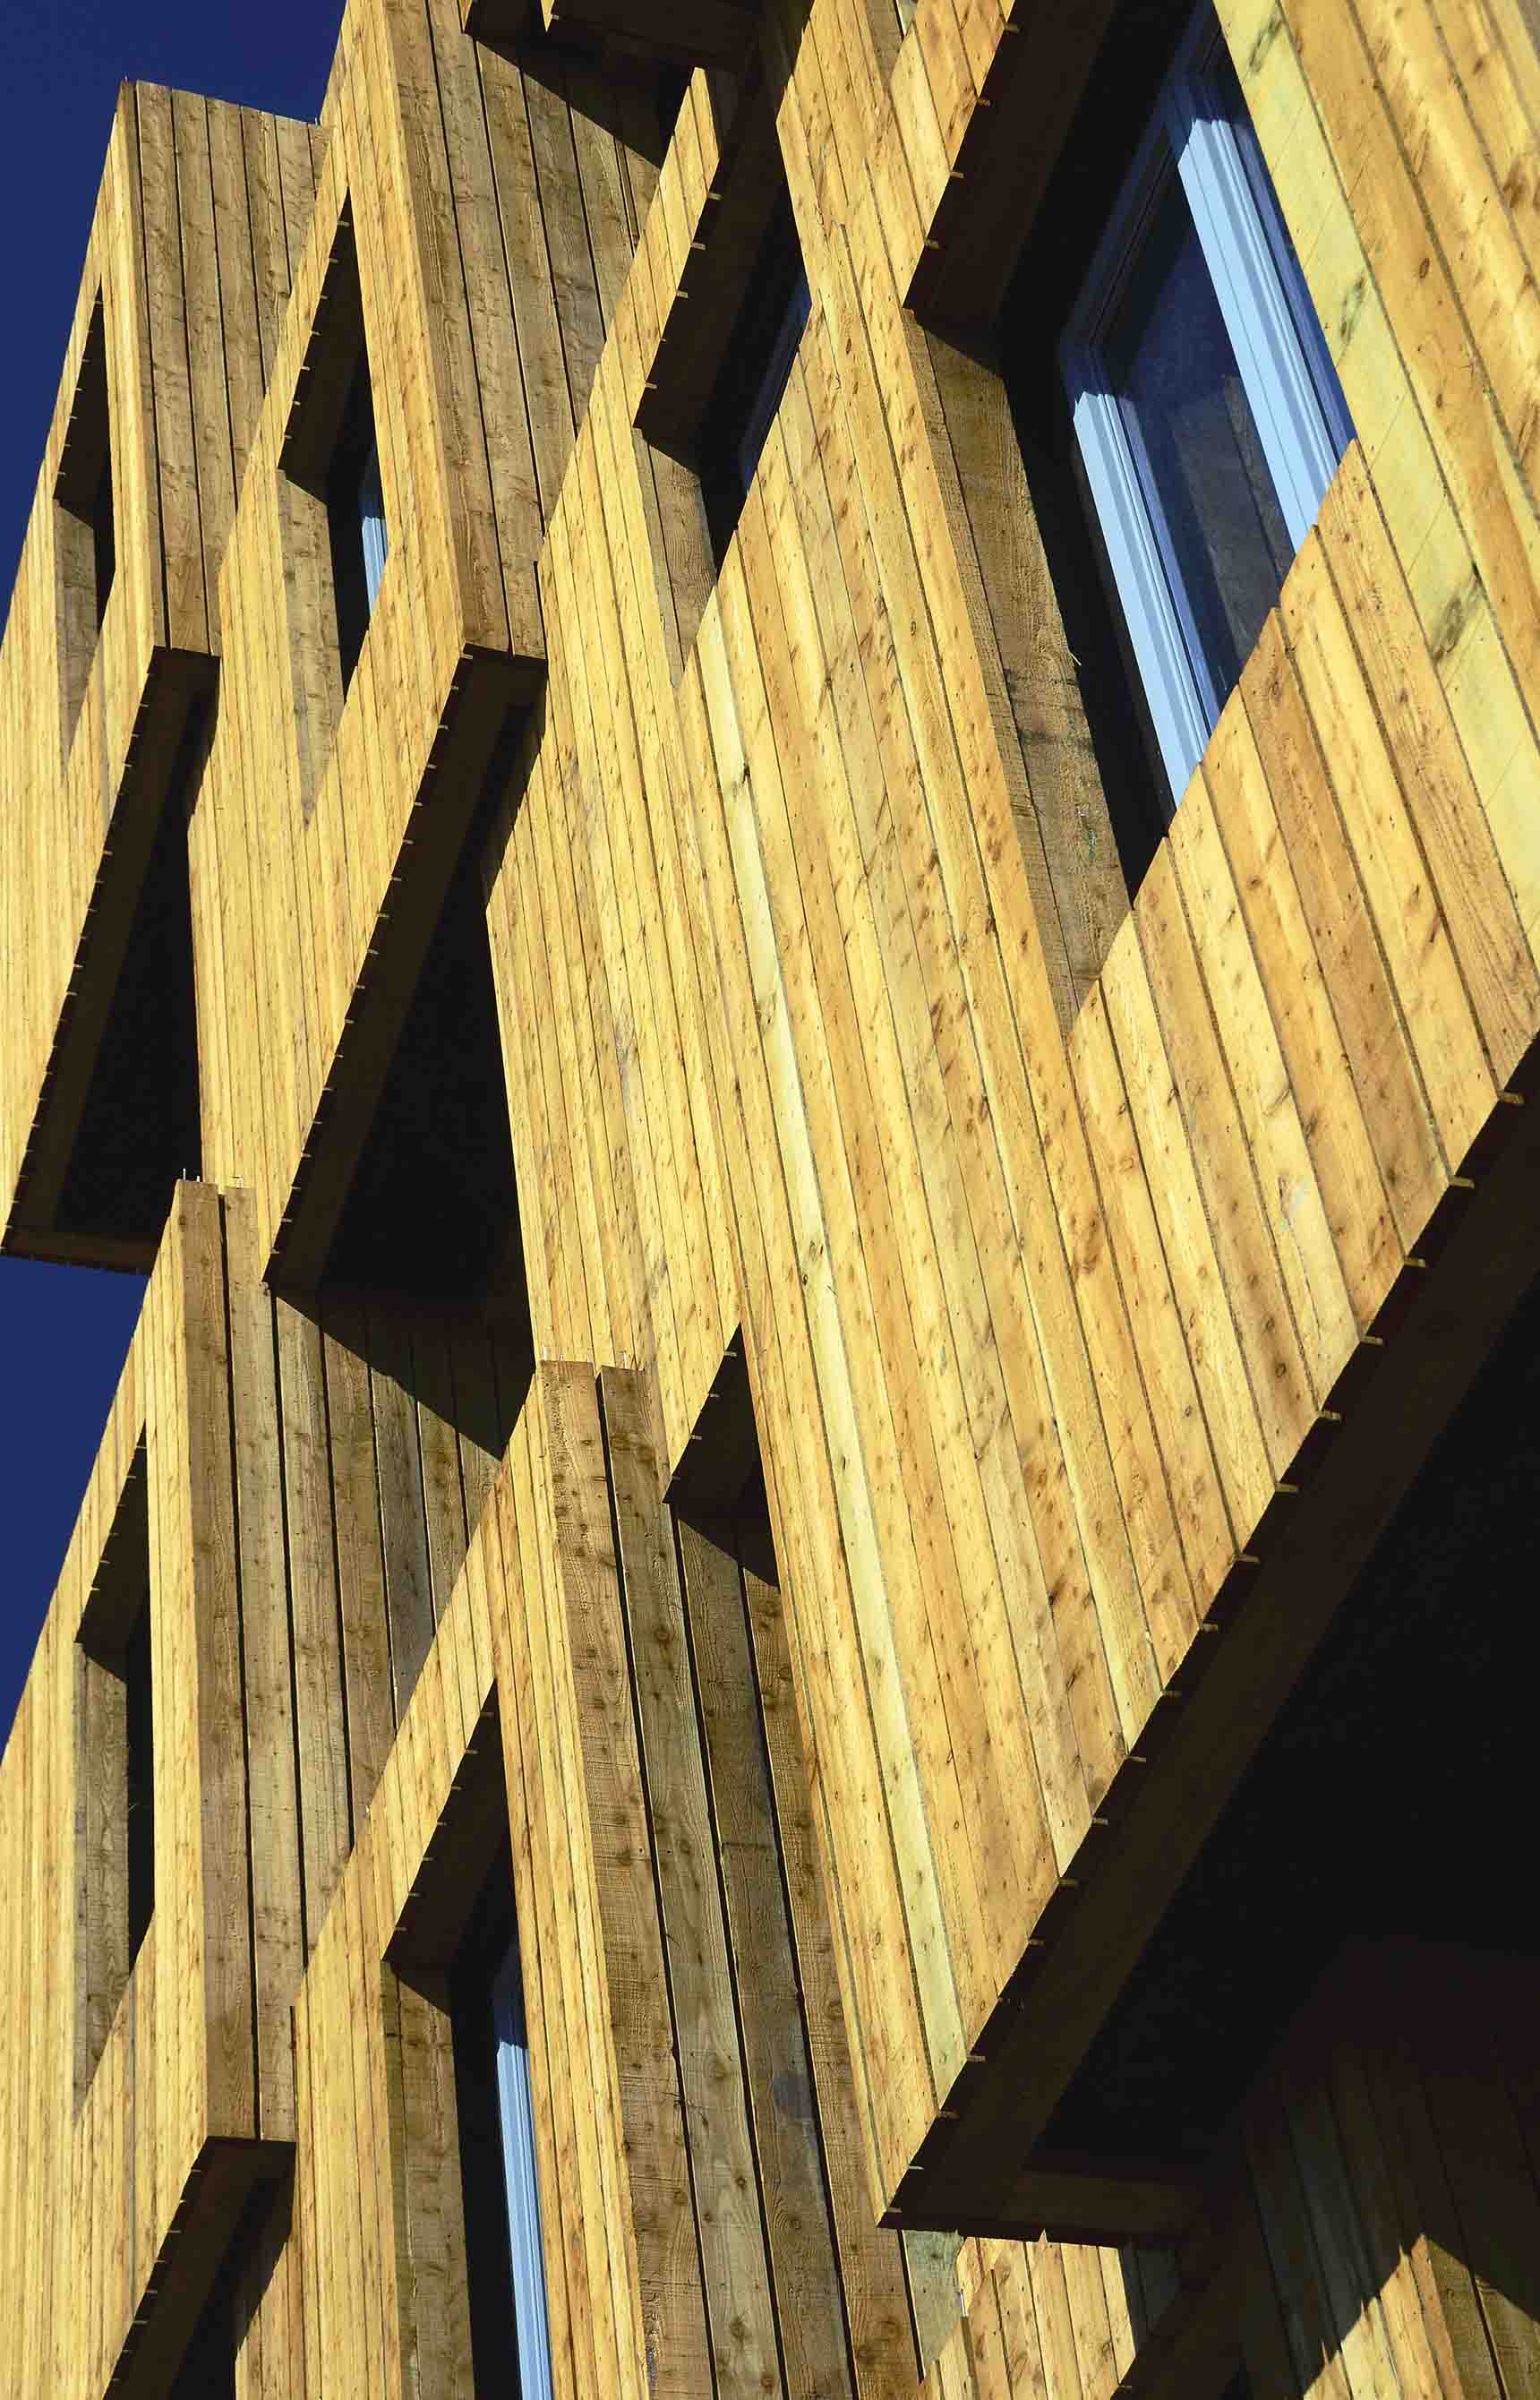 End elevation window detail of Gloworks by Ash Sakula Architects